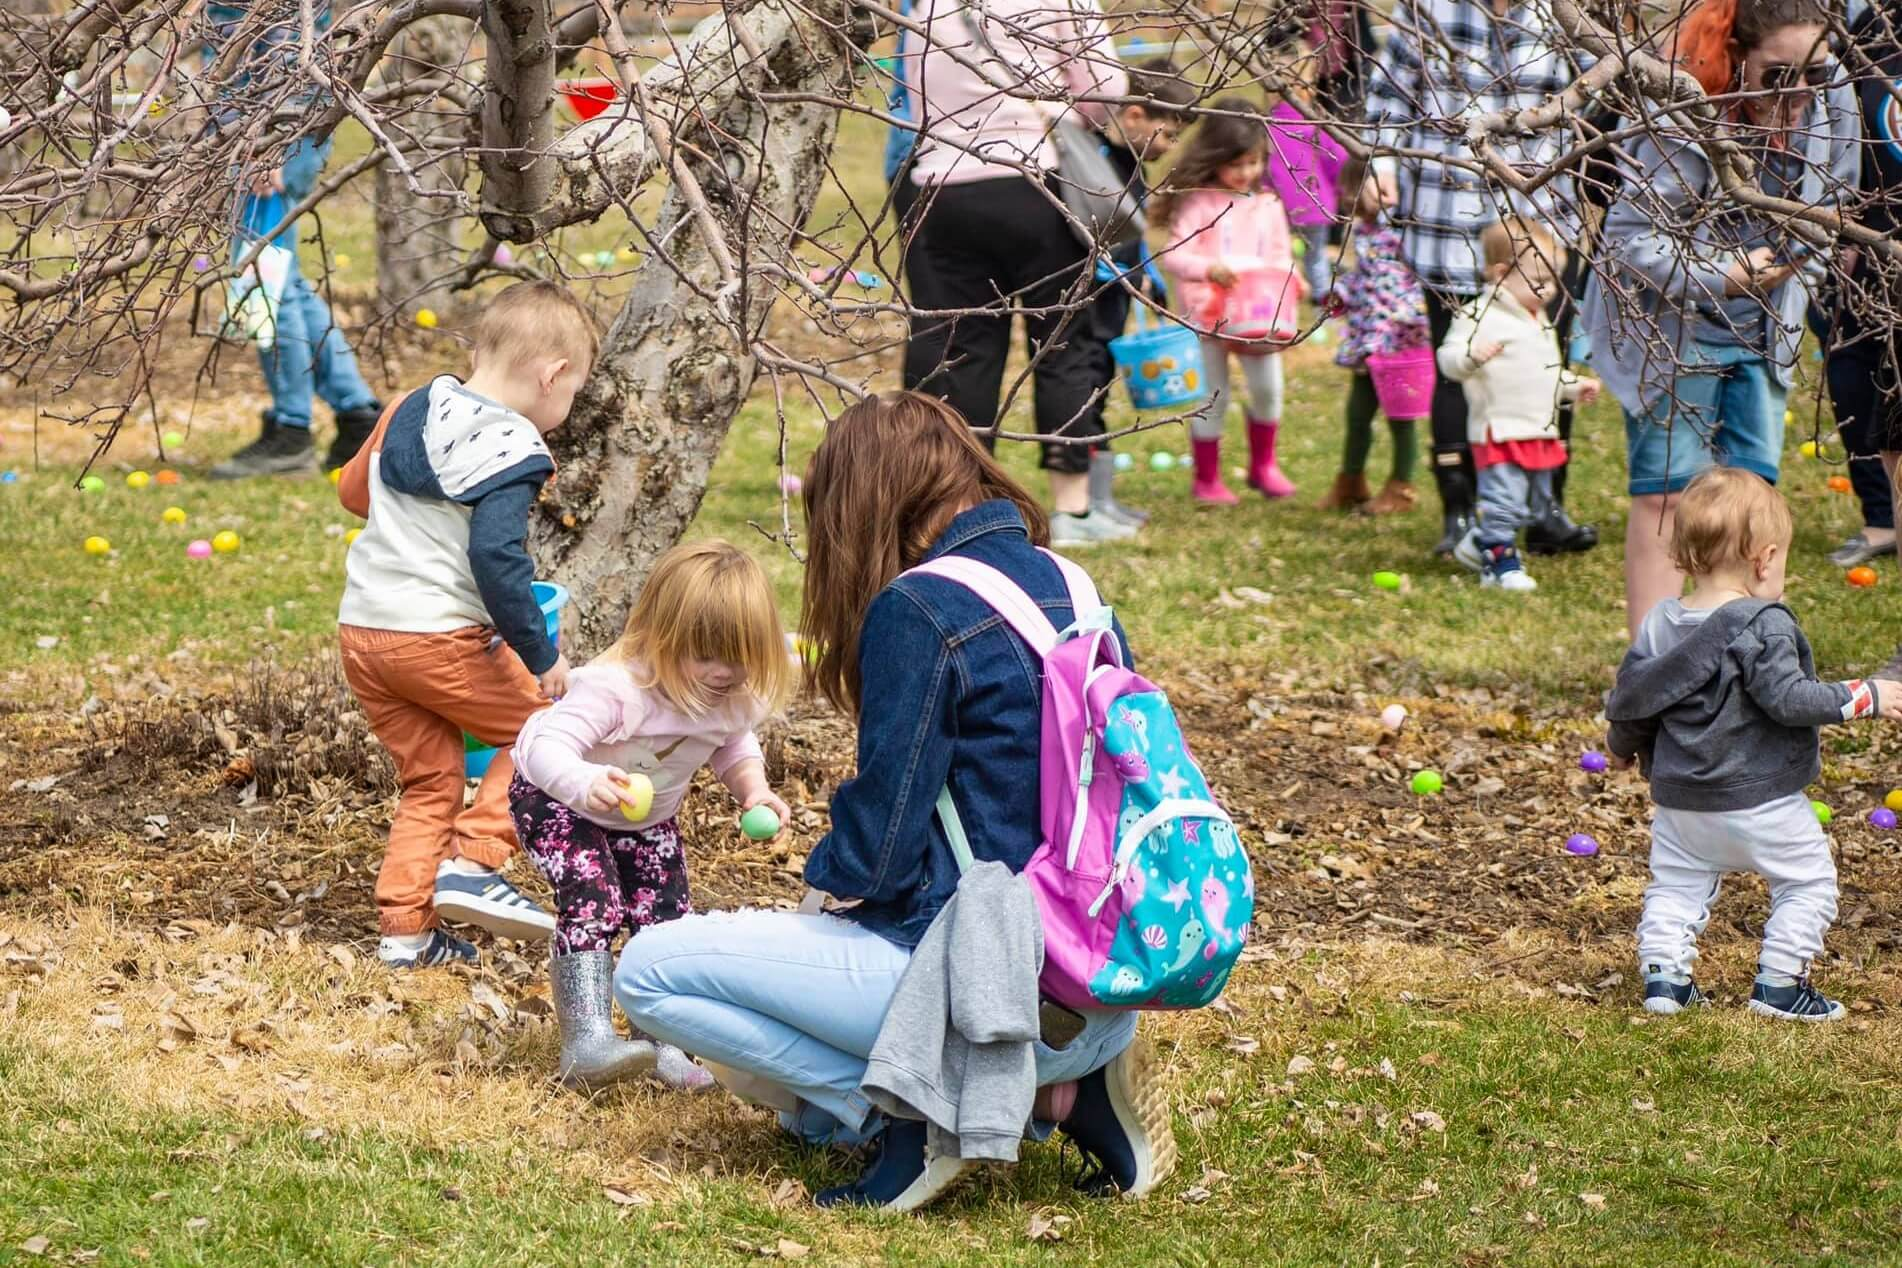 Celebrate Easter At Blake Farms With Easter Bunny, Egg Hunt + Brunch!